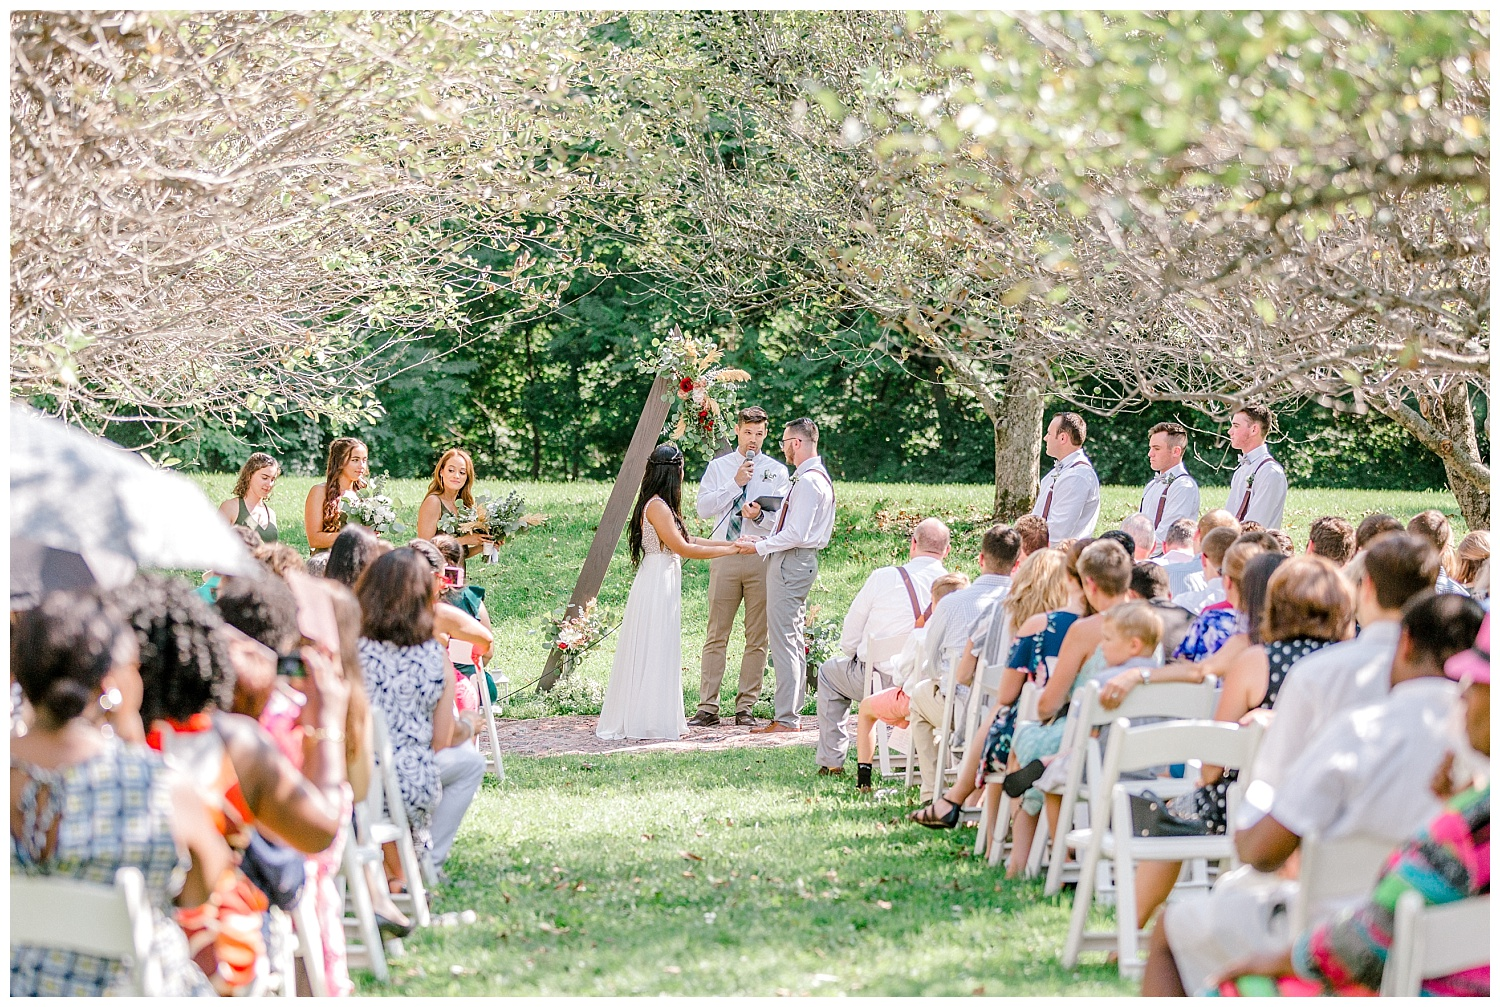 Olive green and white rustic barn wedding at burnside plantation in bethlehem pennsylvania by PA based destination wedding and lifestyle photographer Lytle photography (45).jpg